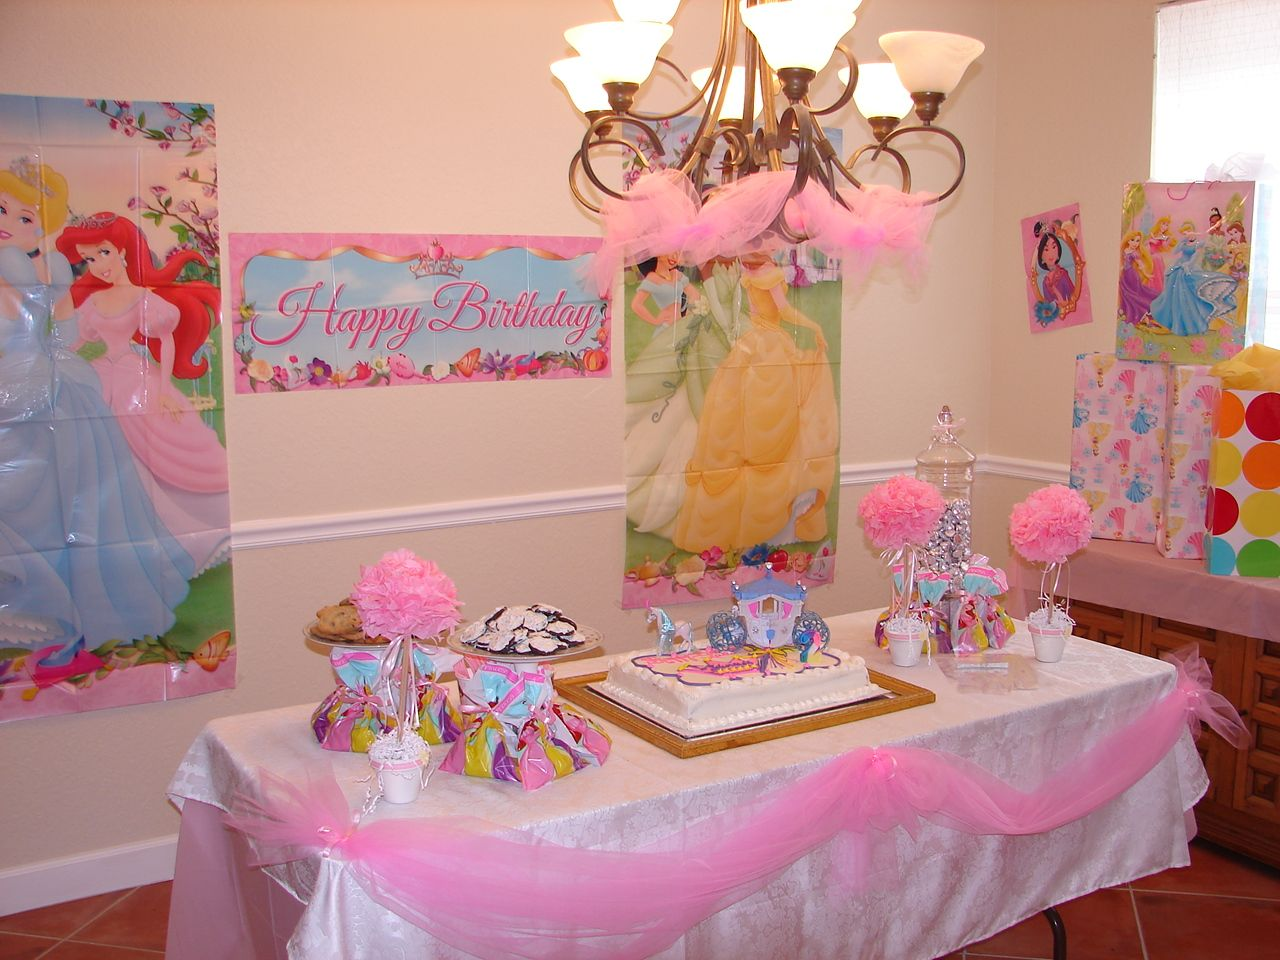 Cake Table Decoration Images : Princess party cake table decorations. party favors ...